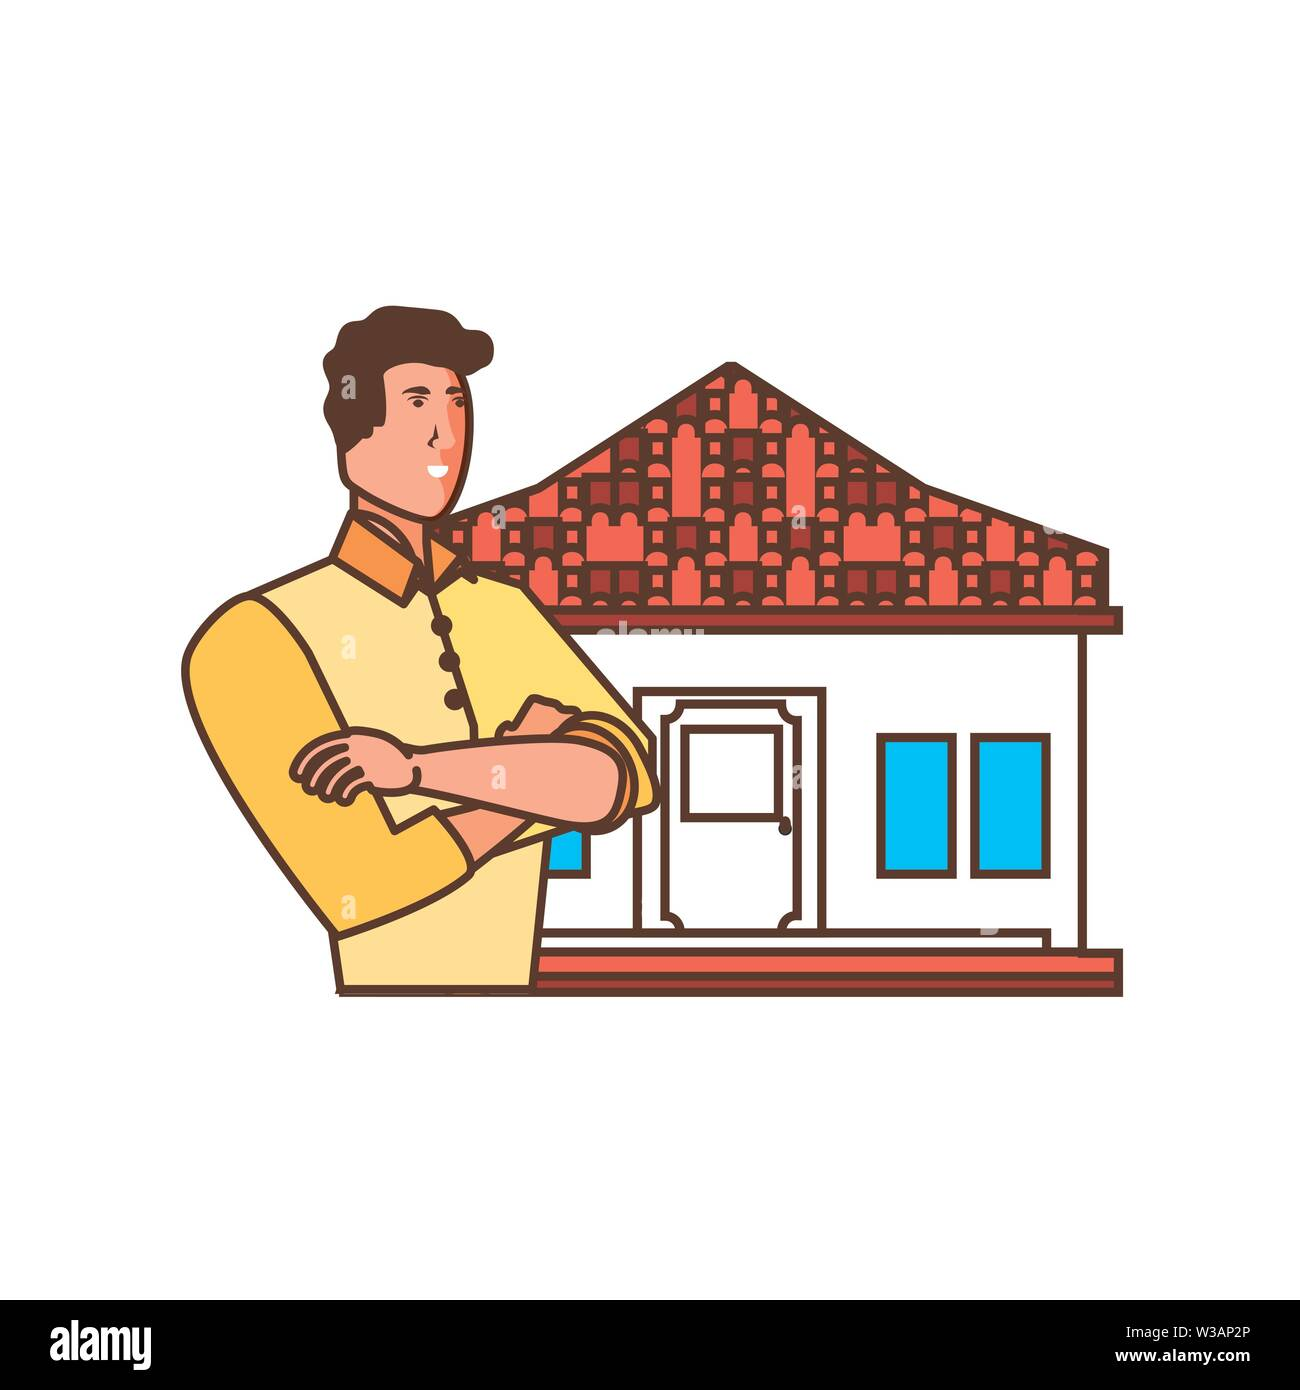 worker construction man with facade house vector illustration design - Stock Image